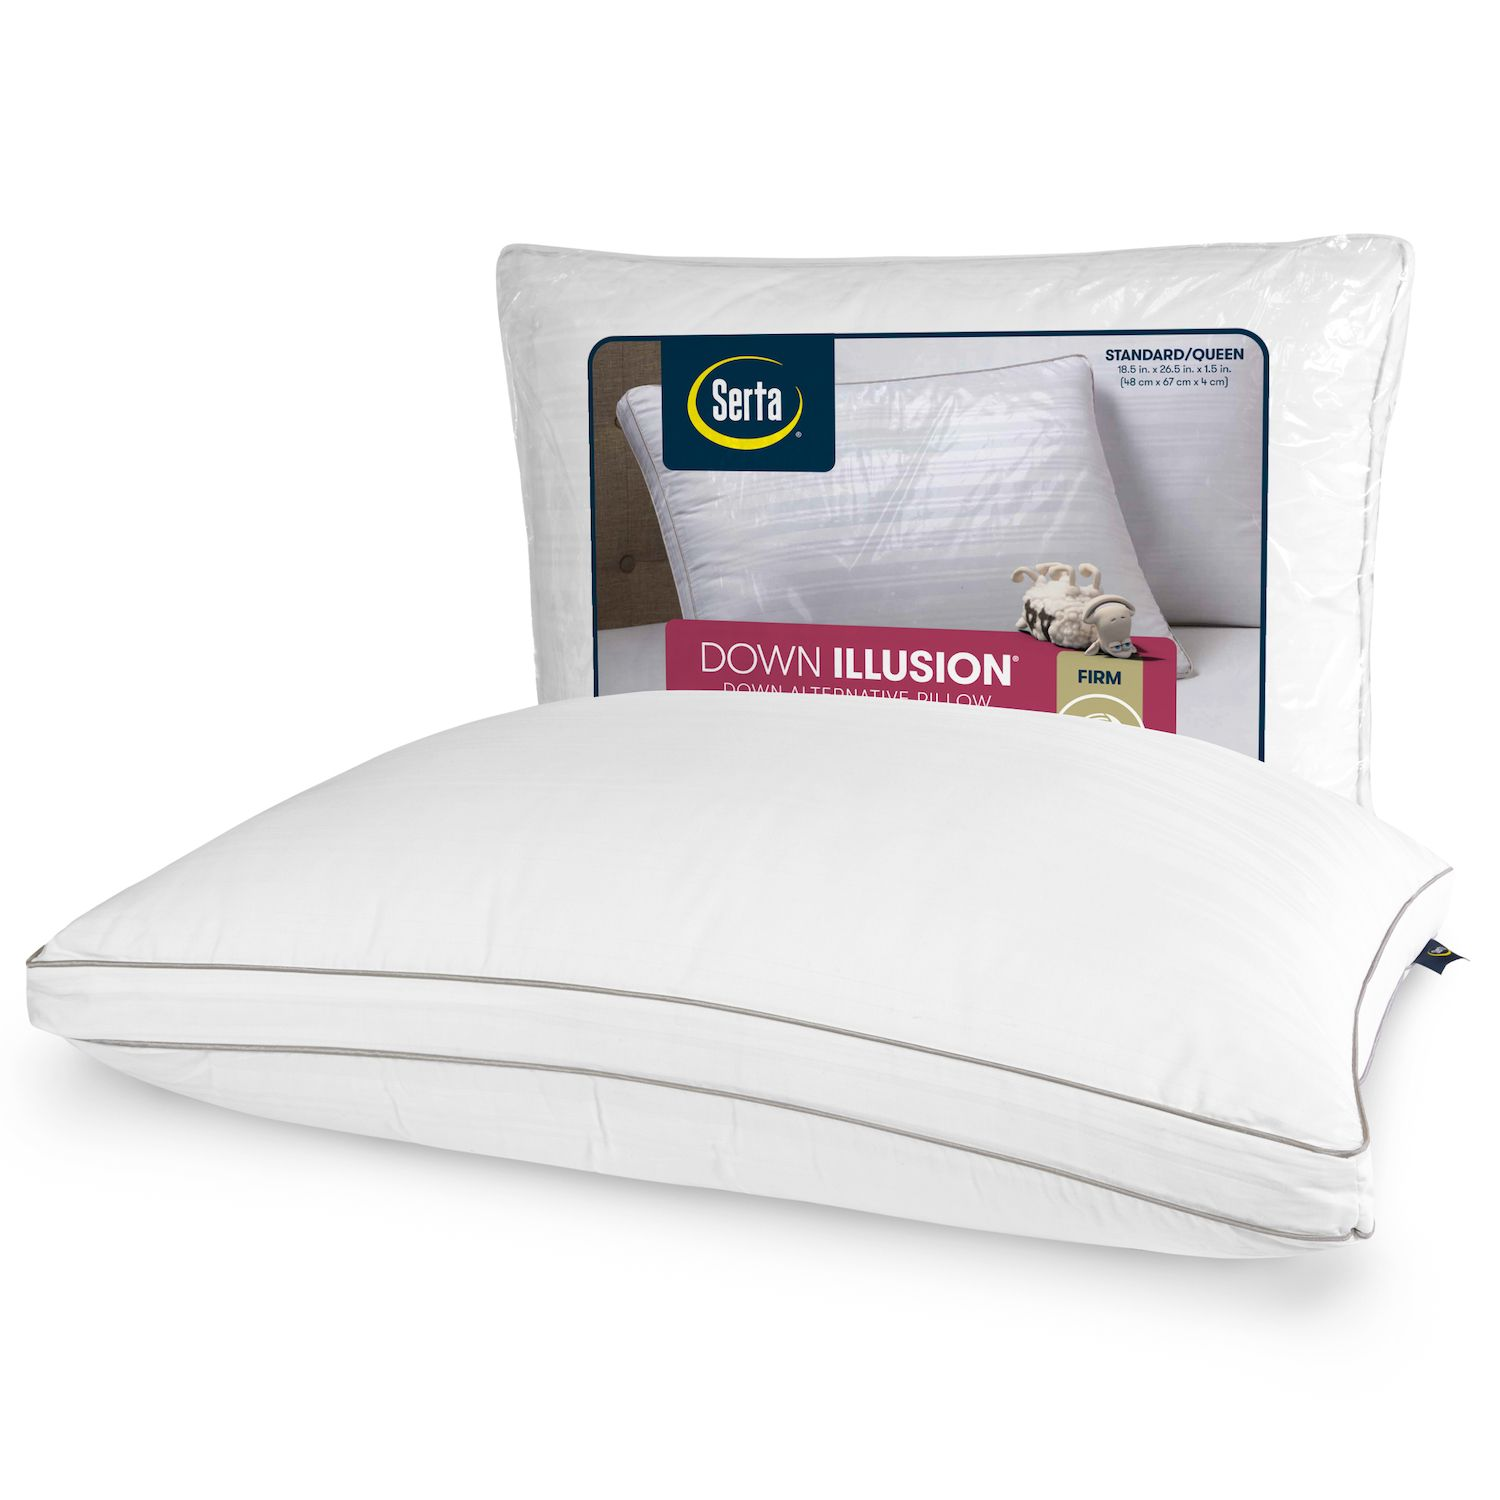 serta down illusion firm bed pillow